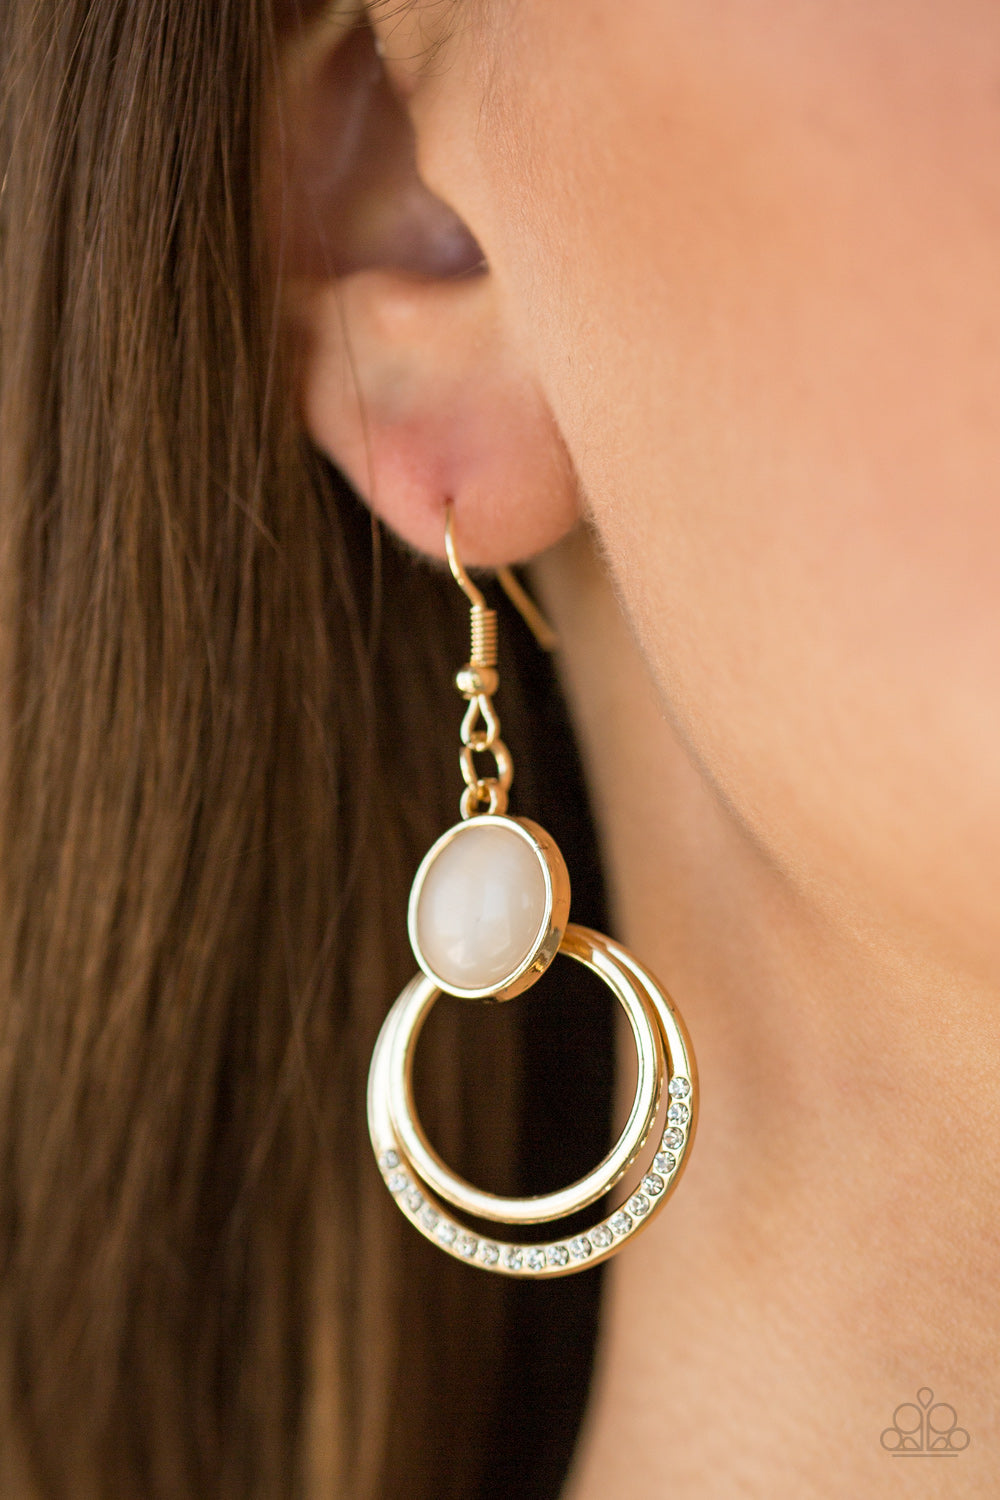 Paparazzi - Dreamily Dreamland - Gold Earrings - Classy Jewels by Linda